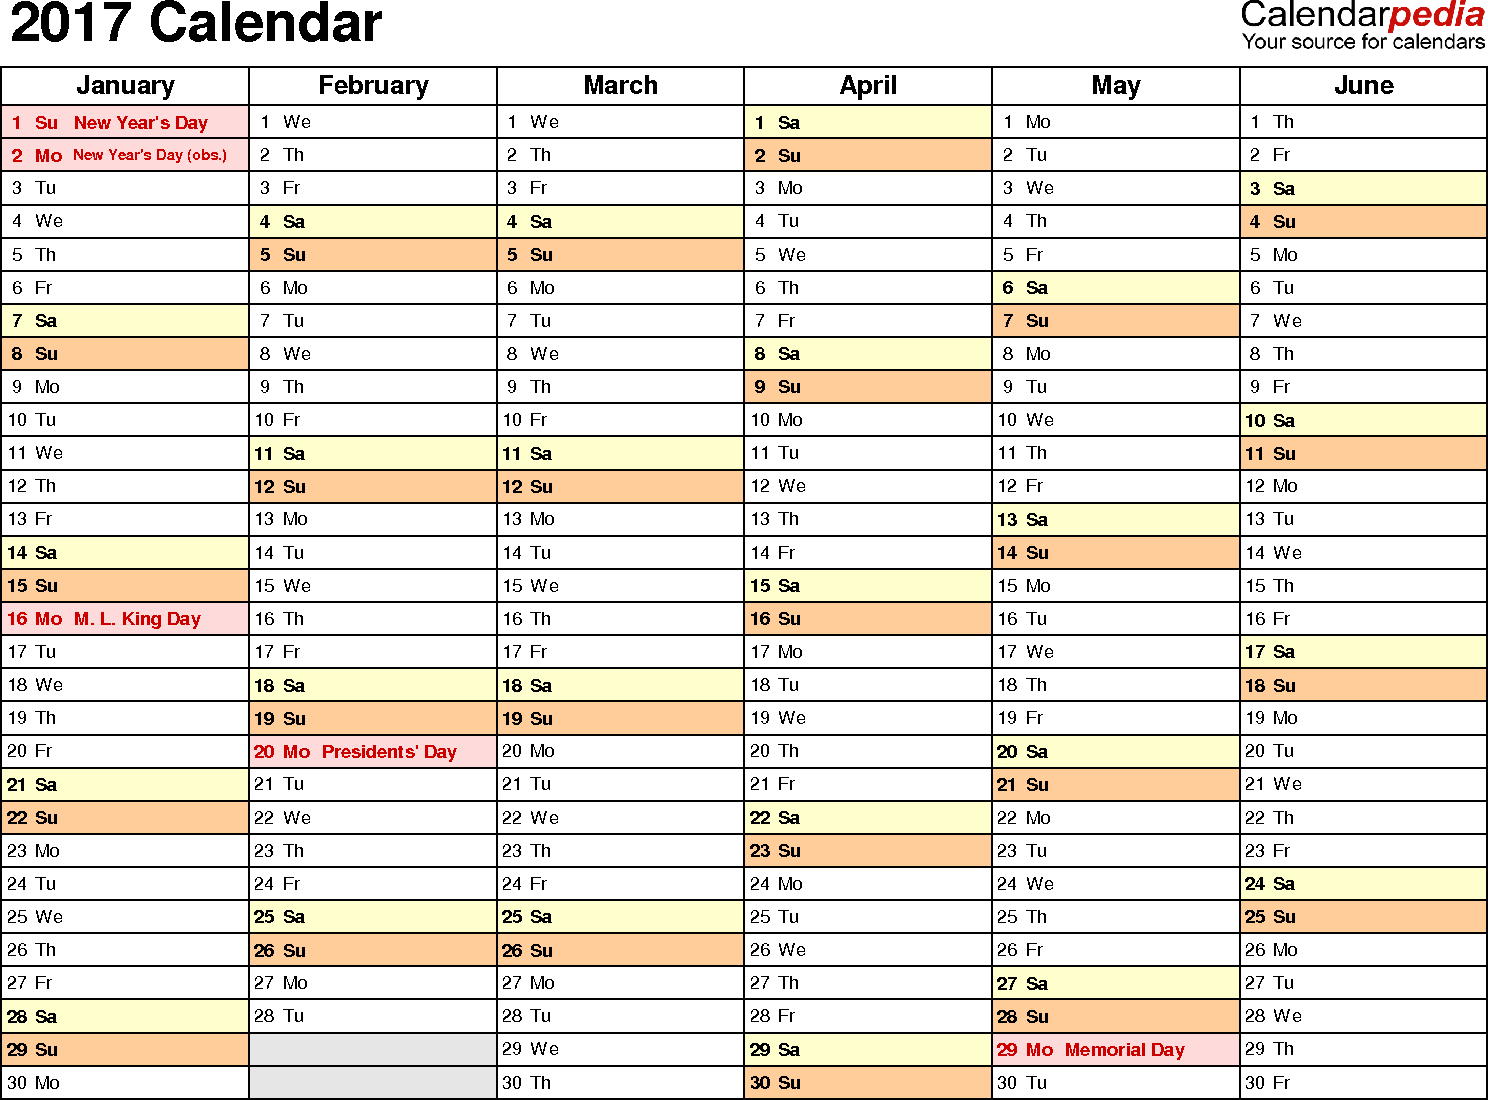 Ediblewildsus  Picturesque  Calendar  Download  Free Printable Excel Templates Xls With Interesting Template   Calendar For Excel Months Horizontally  Pages Landscape Orientation With Astounding Separate Names In Excel Also Interquartile Range In Excel In Addition Excel Factorial And How Do I Freeze Cells In Excel As Well As Switch Columns In Excel Additionally Microsoft Excel Mac From Calendarpediacom With Ediblewildsus  Interesting  Calendar  Download  Free Printable Excel Templates Xls With Astounding Template   Calendar For Excel Months Horizontally  Pages Landscape Orientation And Picturesque Separate Names In Excel Also Interquartile Range In Excel In Addition Excel Factorial From Calendarpediacom